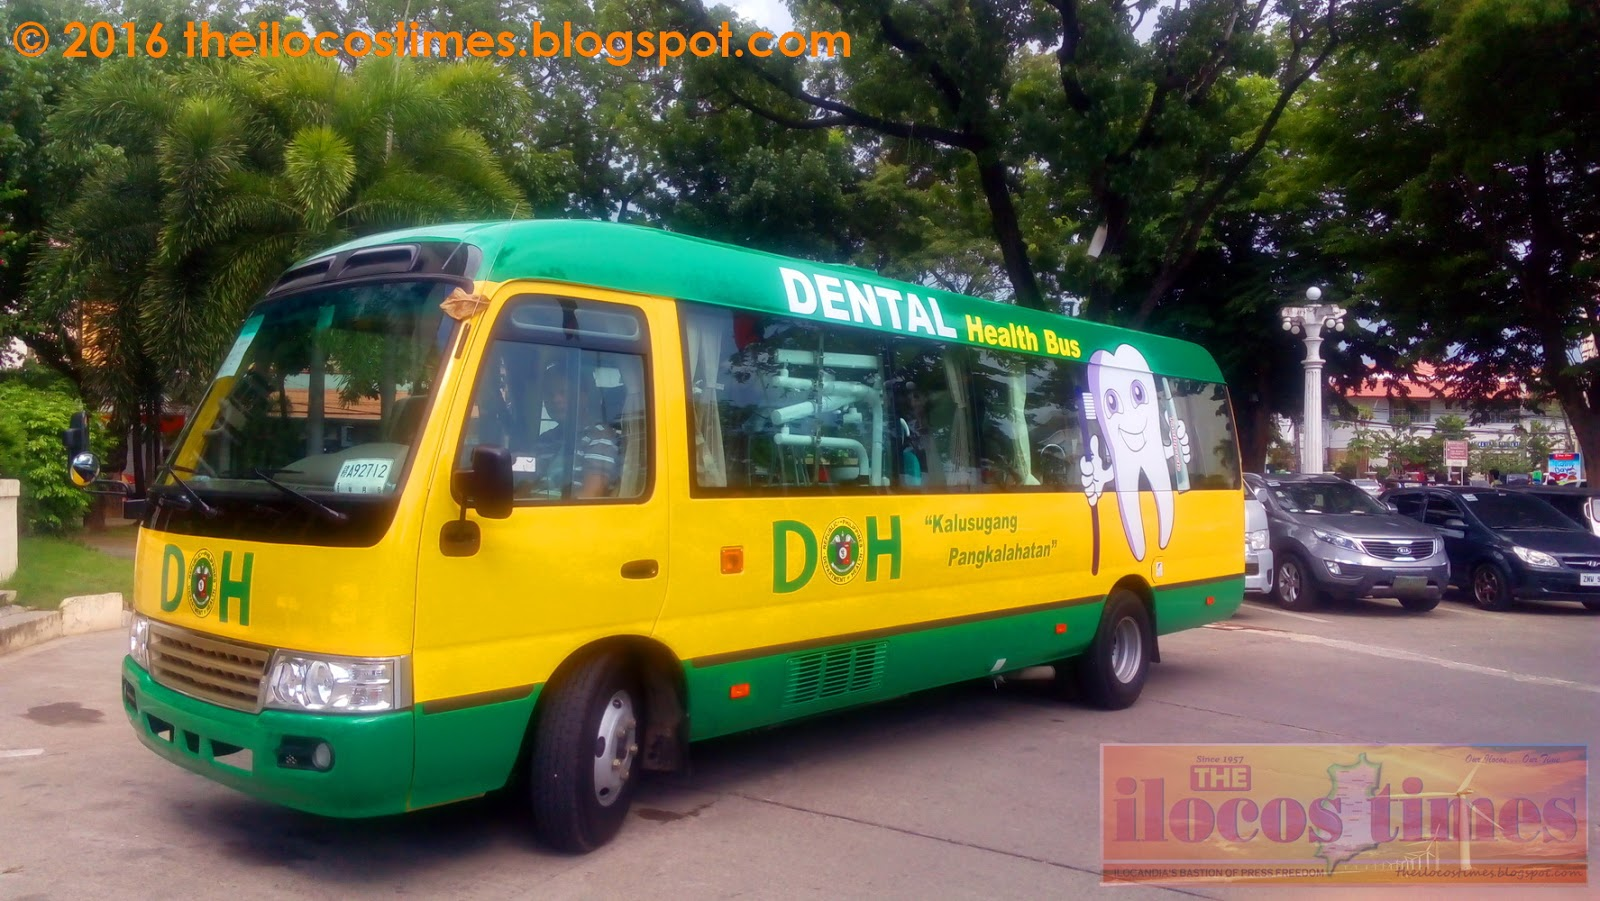 The Ilocos Times: Mobile dental health bus now serving in